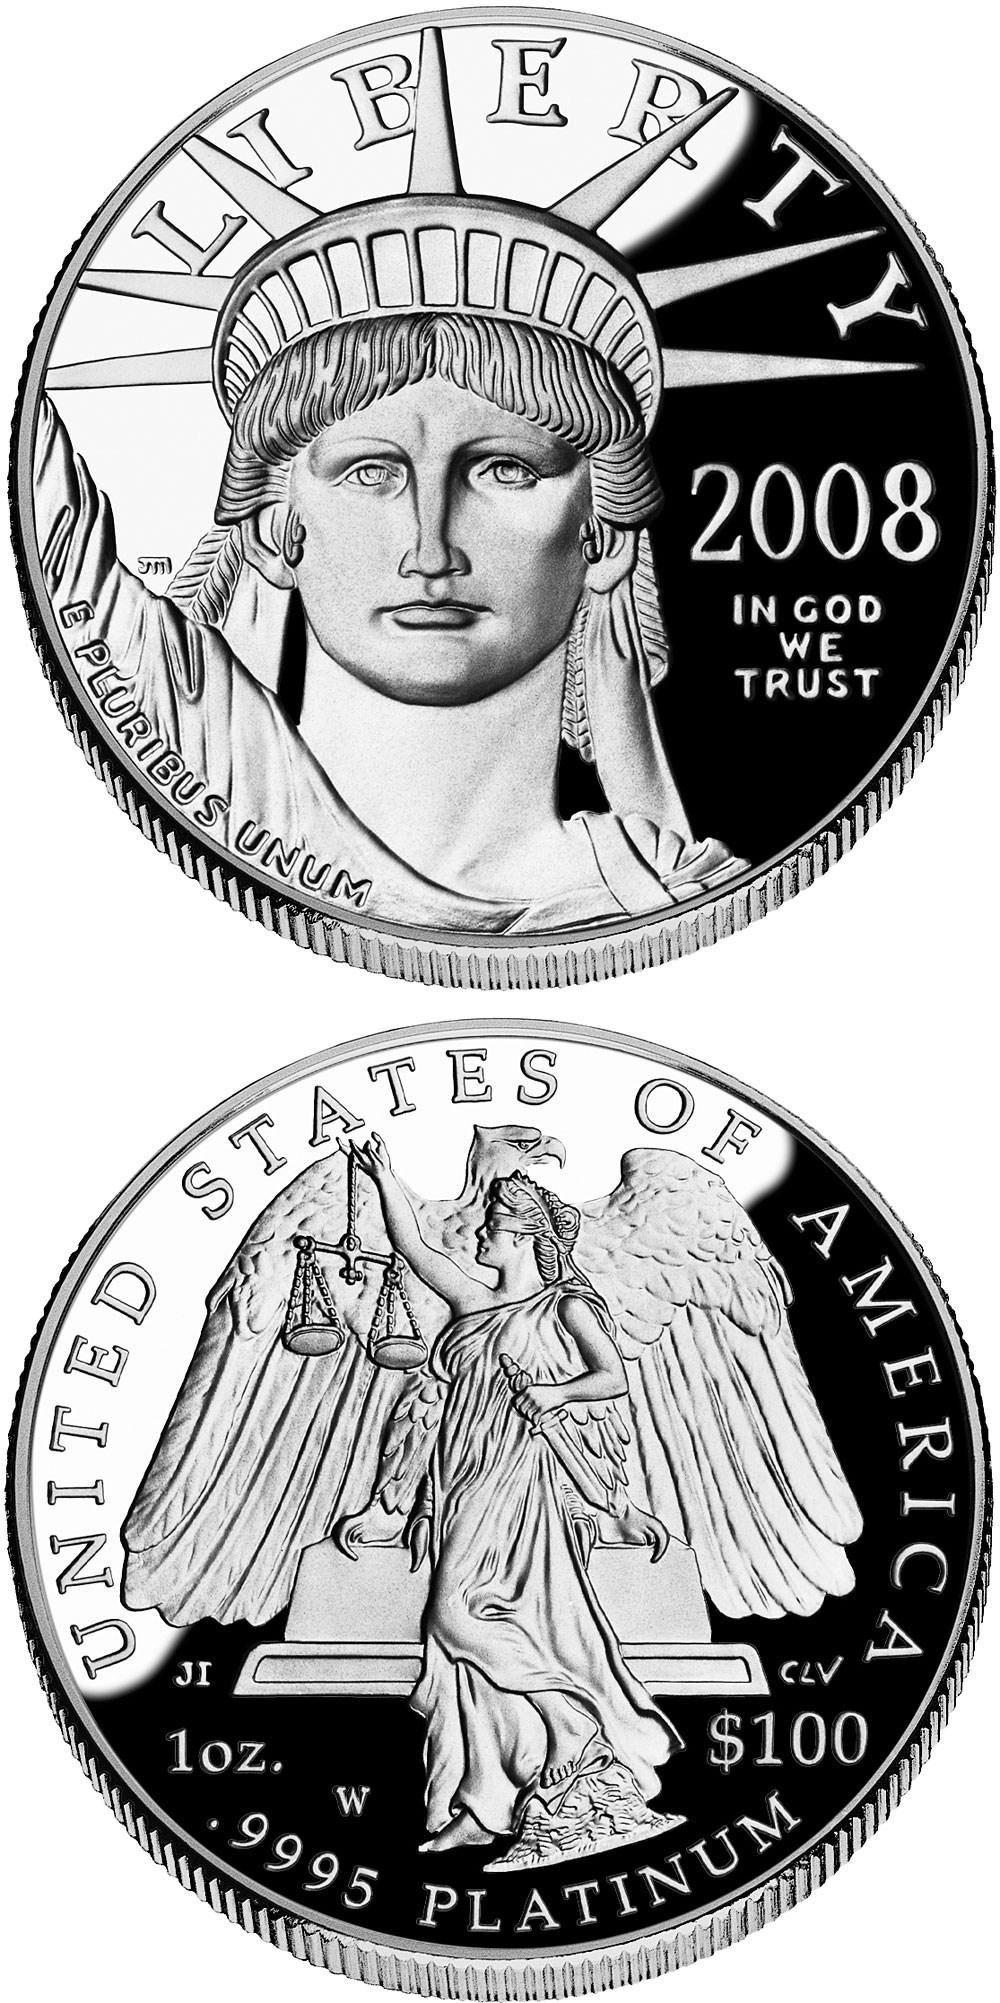 Image of 100 dollars coin - American Eagle Platinum One Ounce Proof Coin | USA 2008